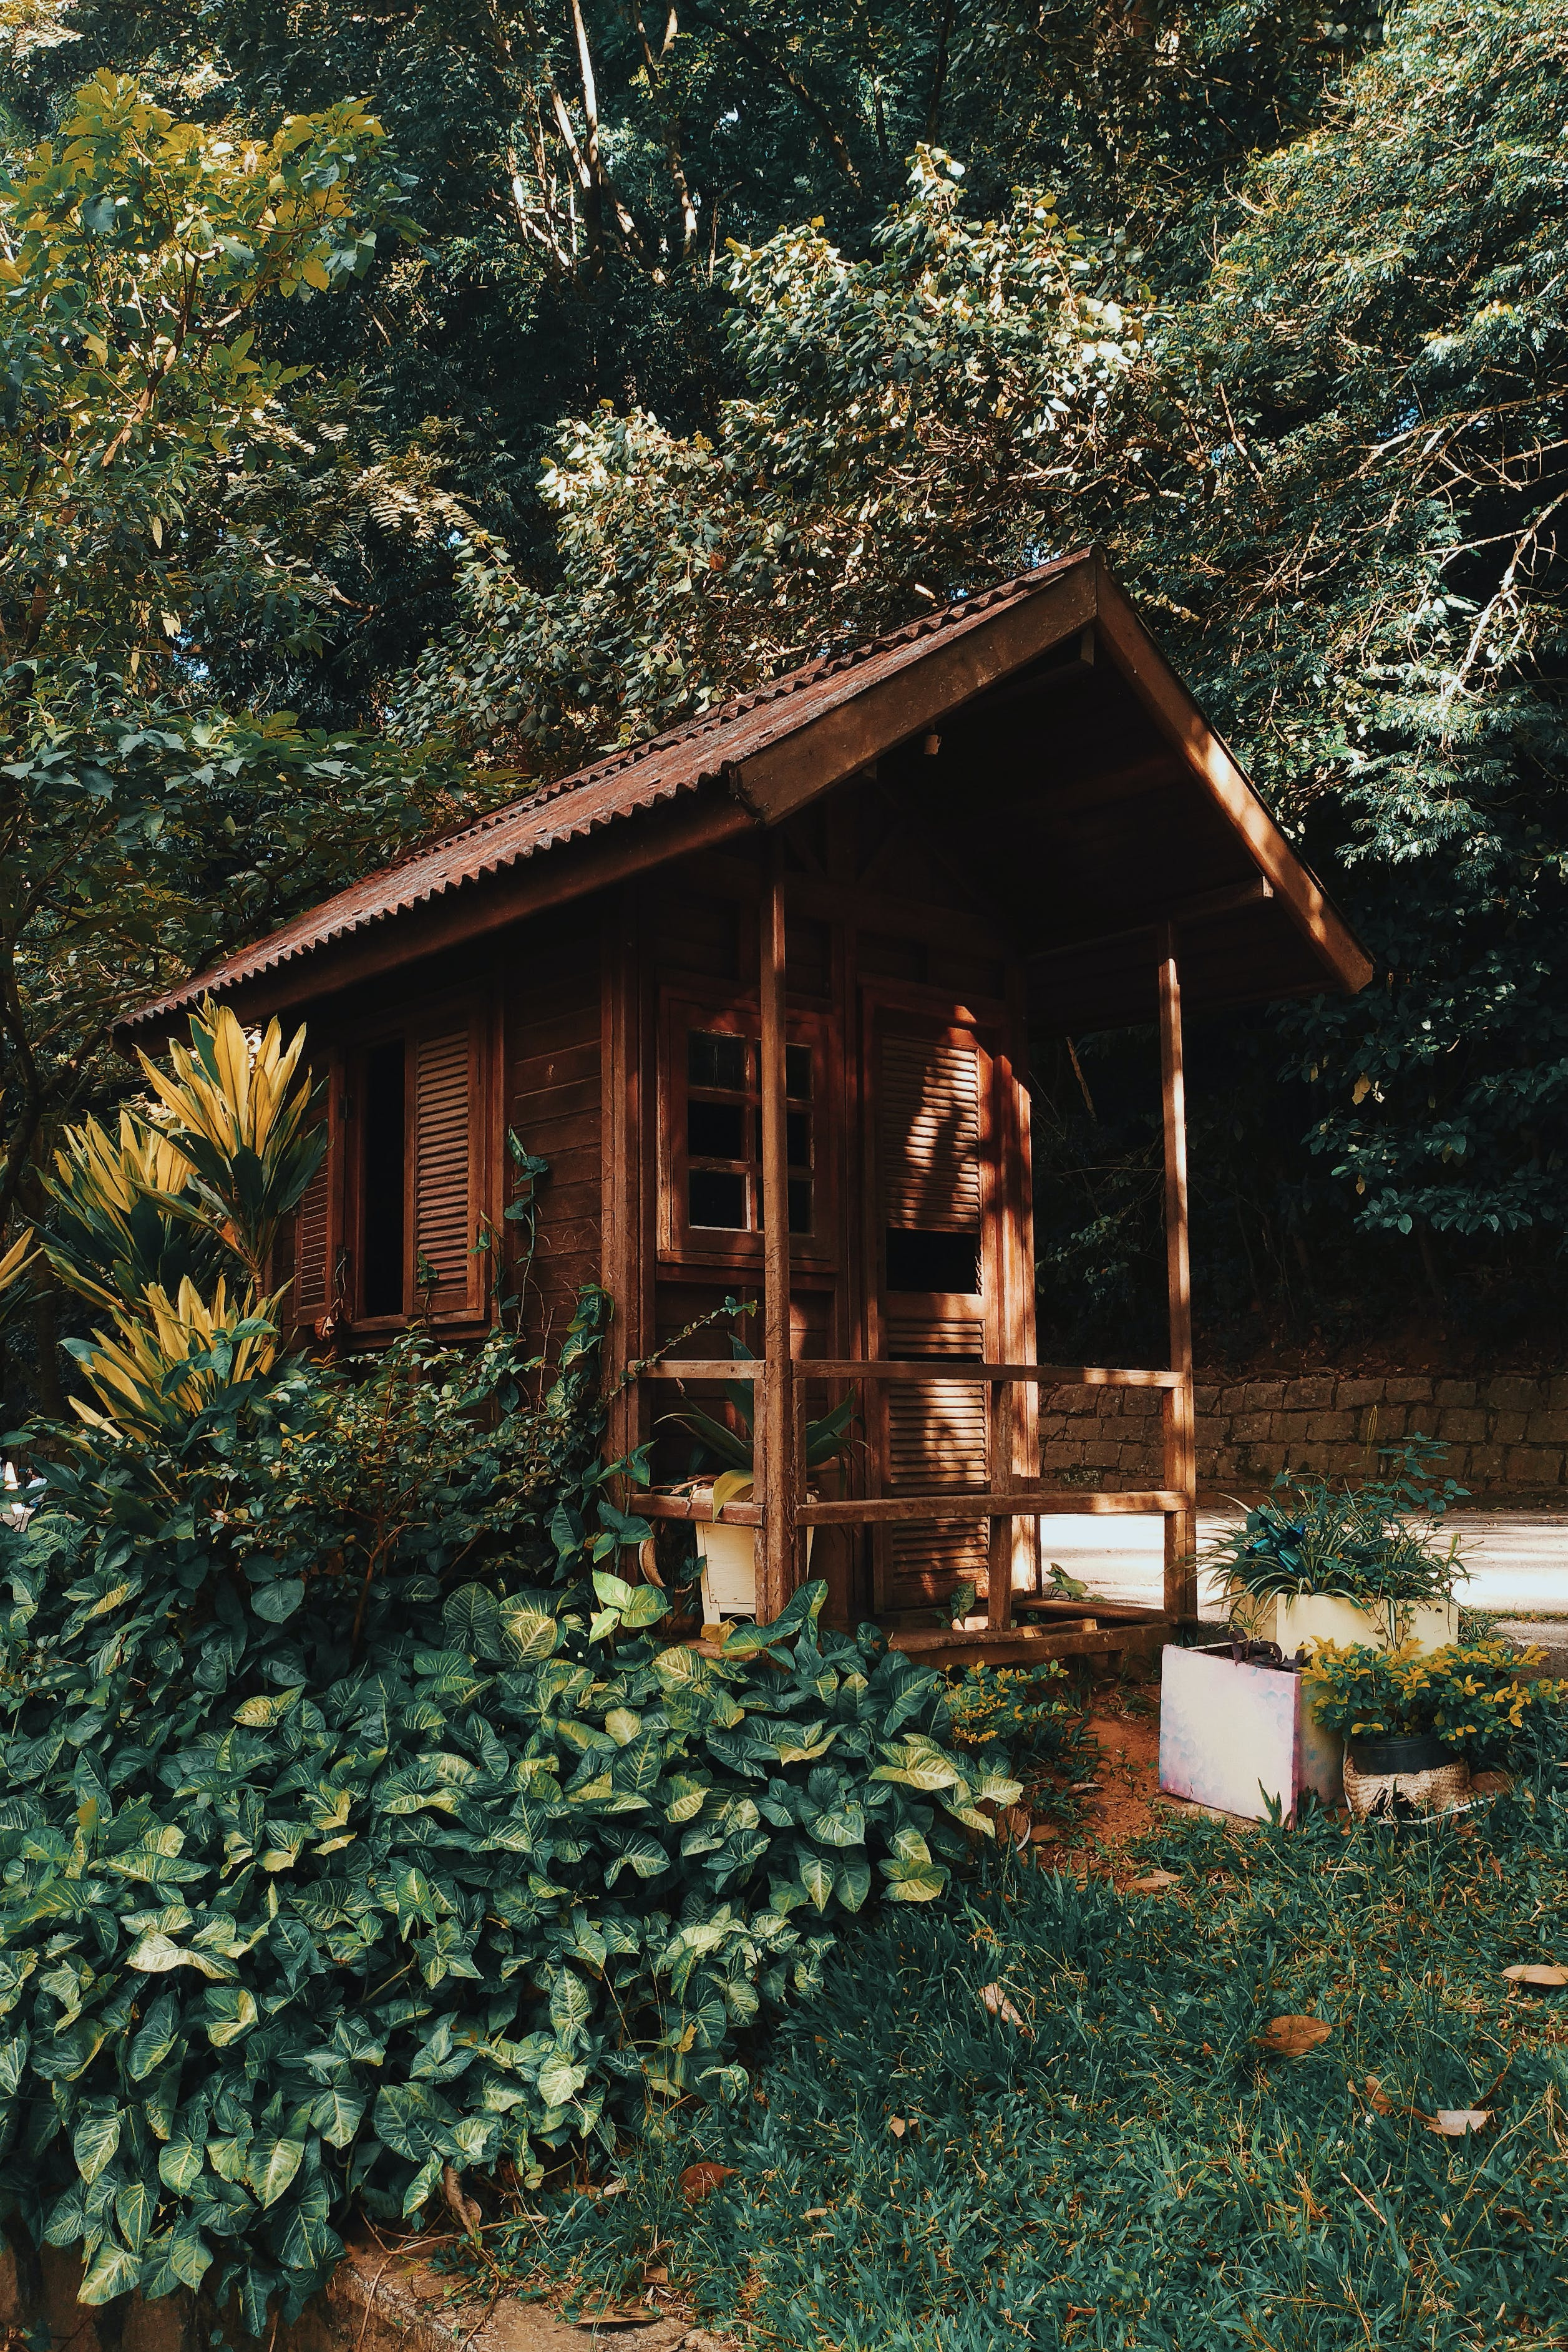 Brown Wooden House Near Plants and Trees